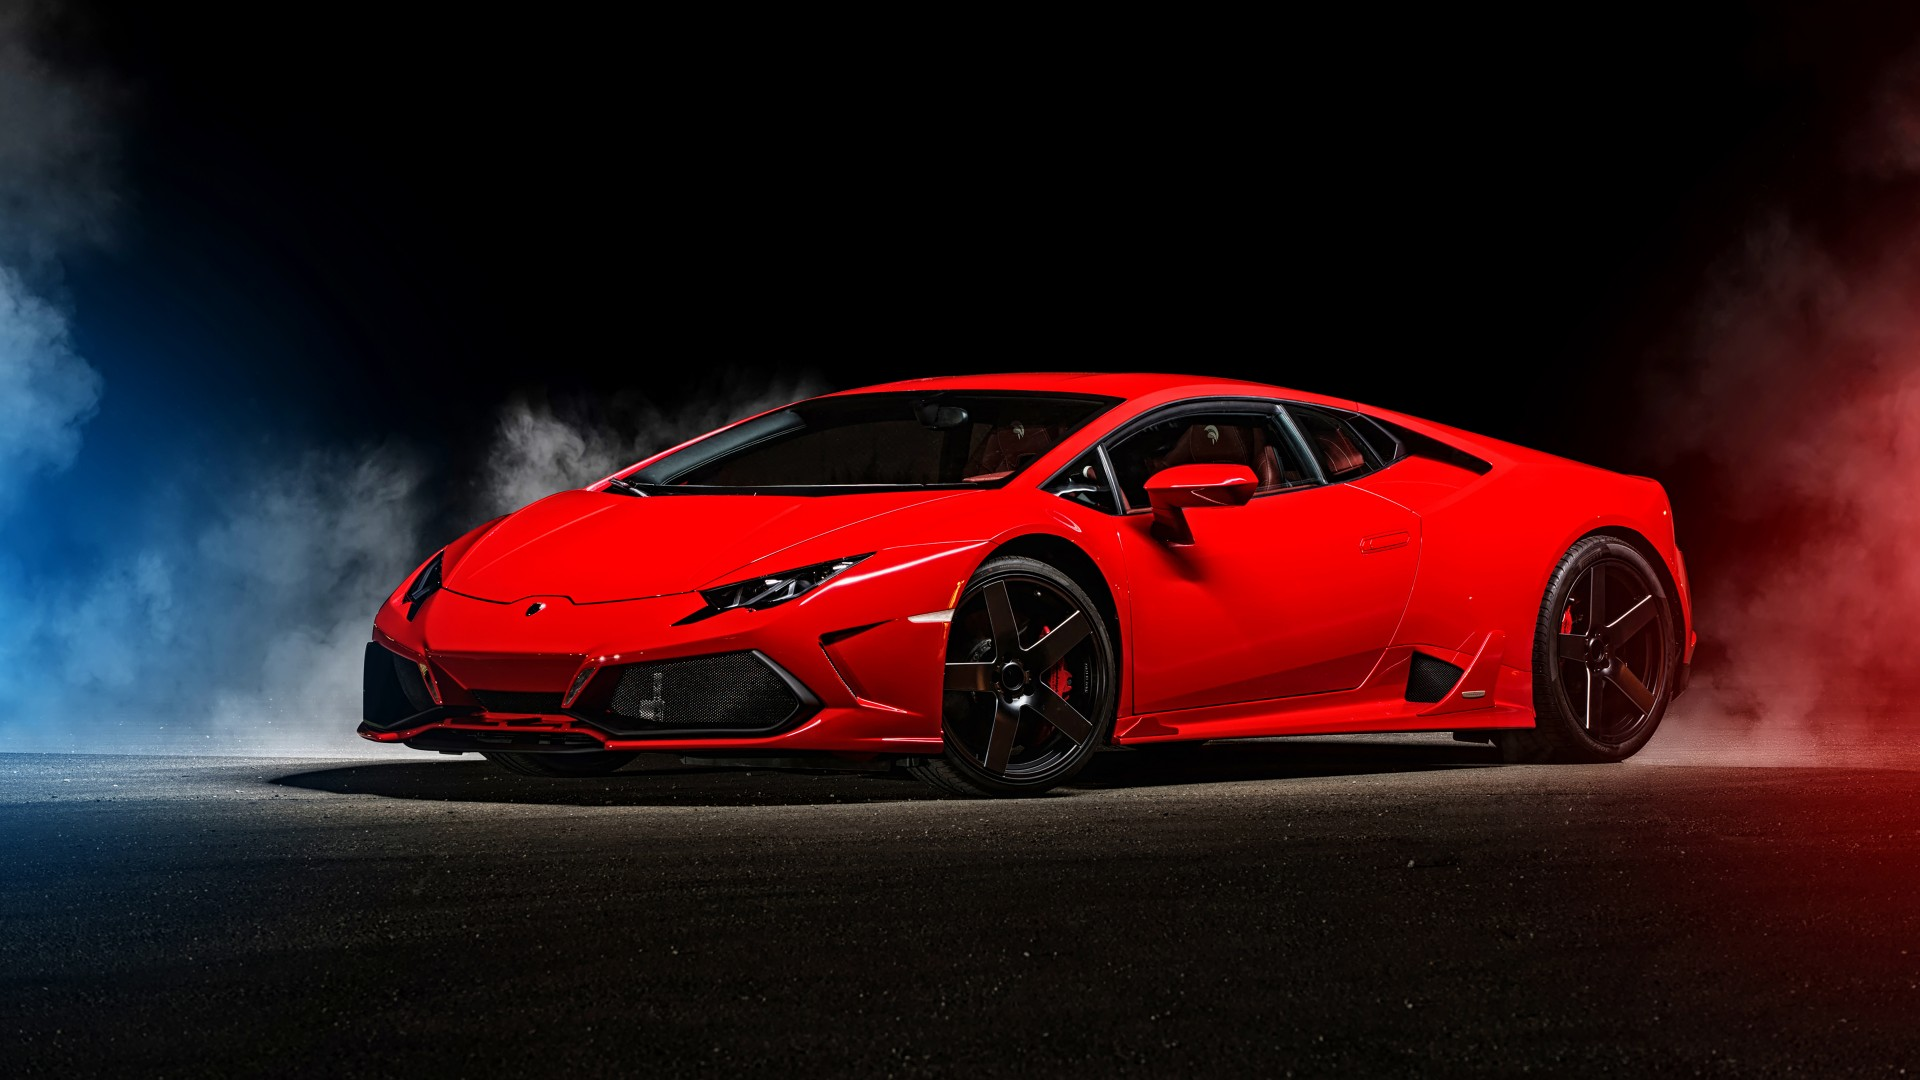 2015 Ares Design Lamborghini Huracan 2 Wallpaper  HD Car Wallpapers